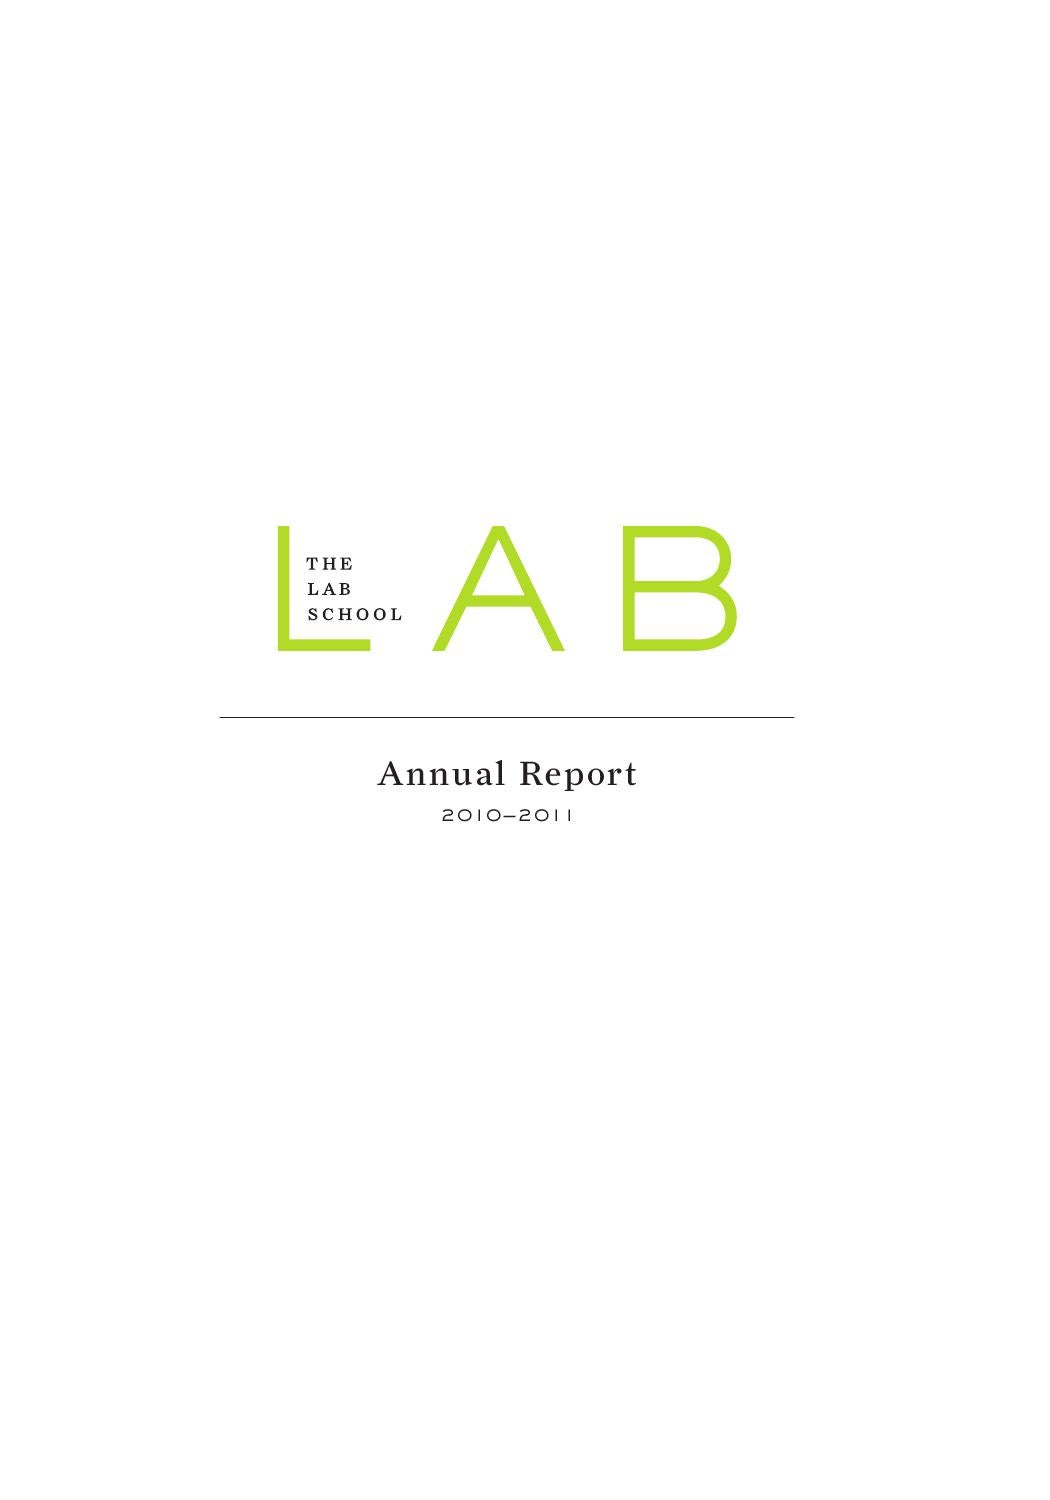 Lab School Annual Report 2010-2011 by The Lab School of